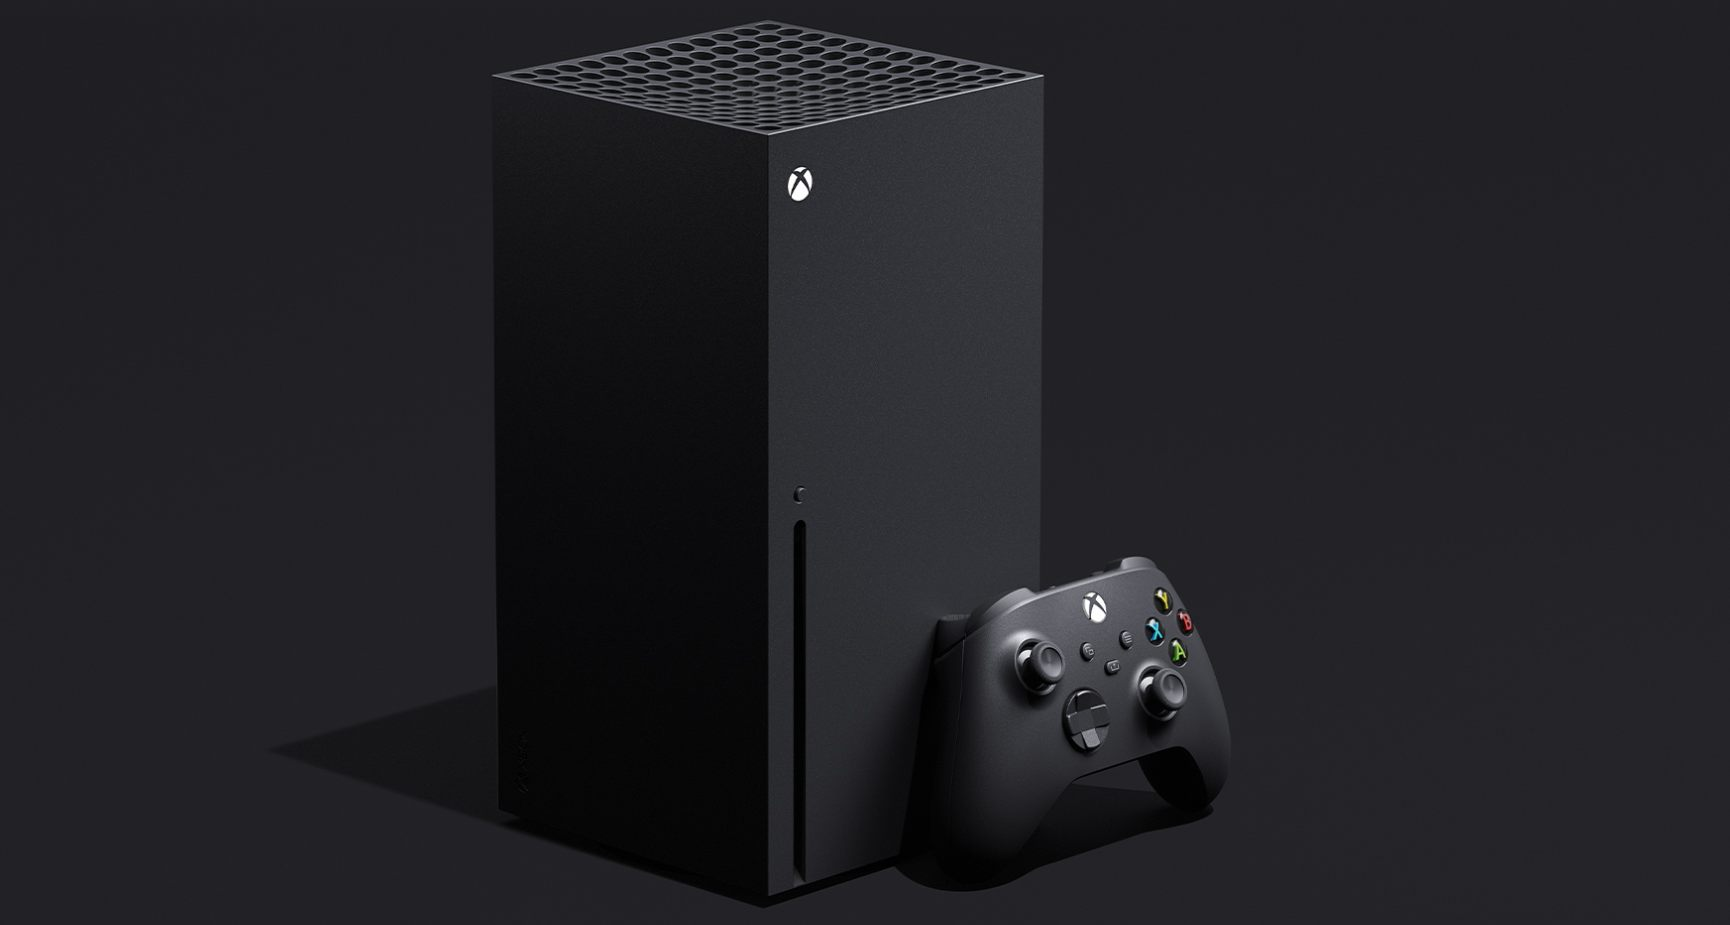 Picture of Xbox Series X, a tall black box shape and a game controller